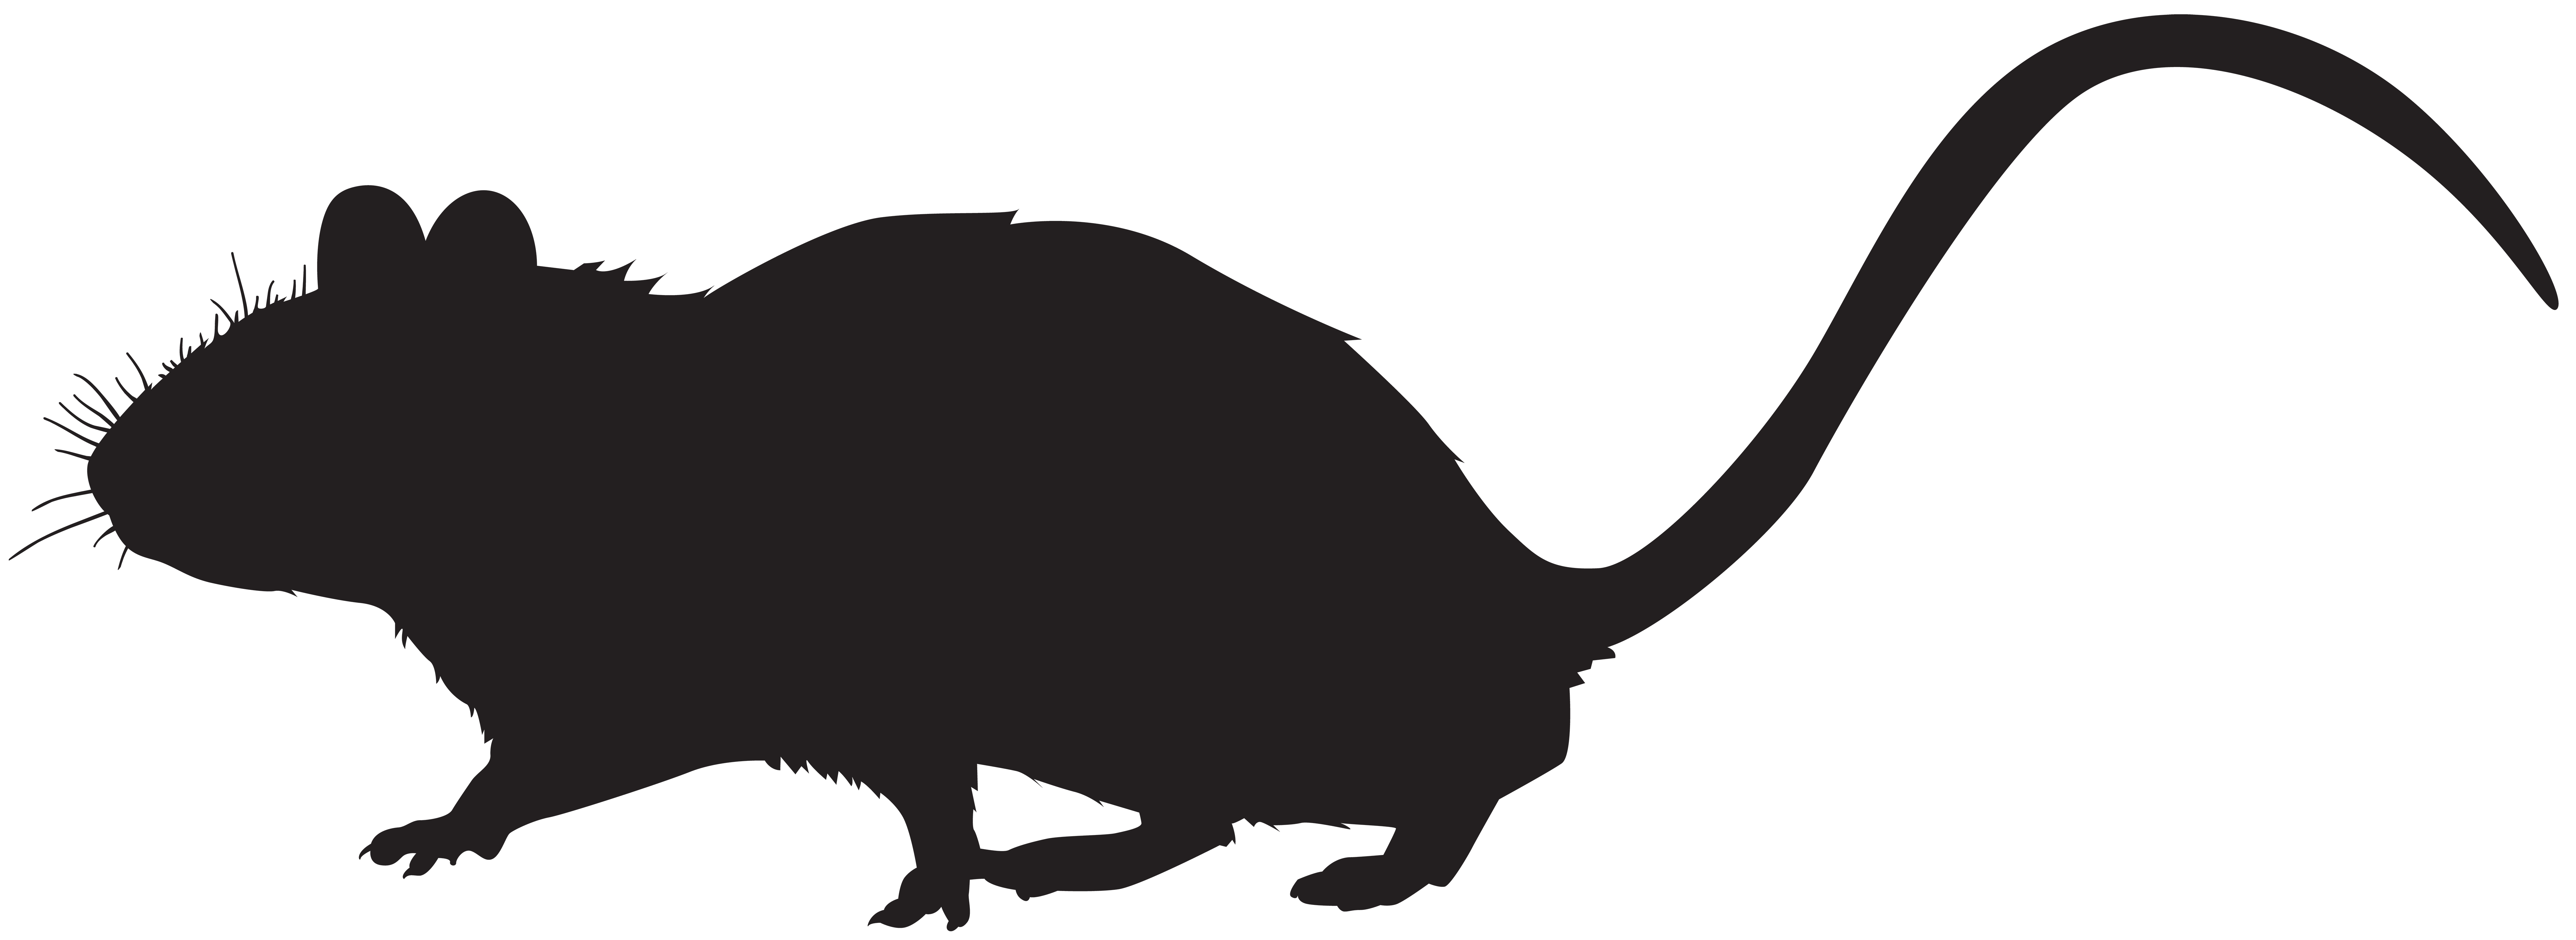 mouse silhouette clip art at getdrawings com free for personal use rh getdrawings com mice clipart black and white mice clipart black and white